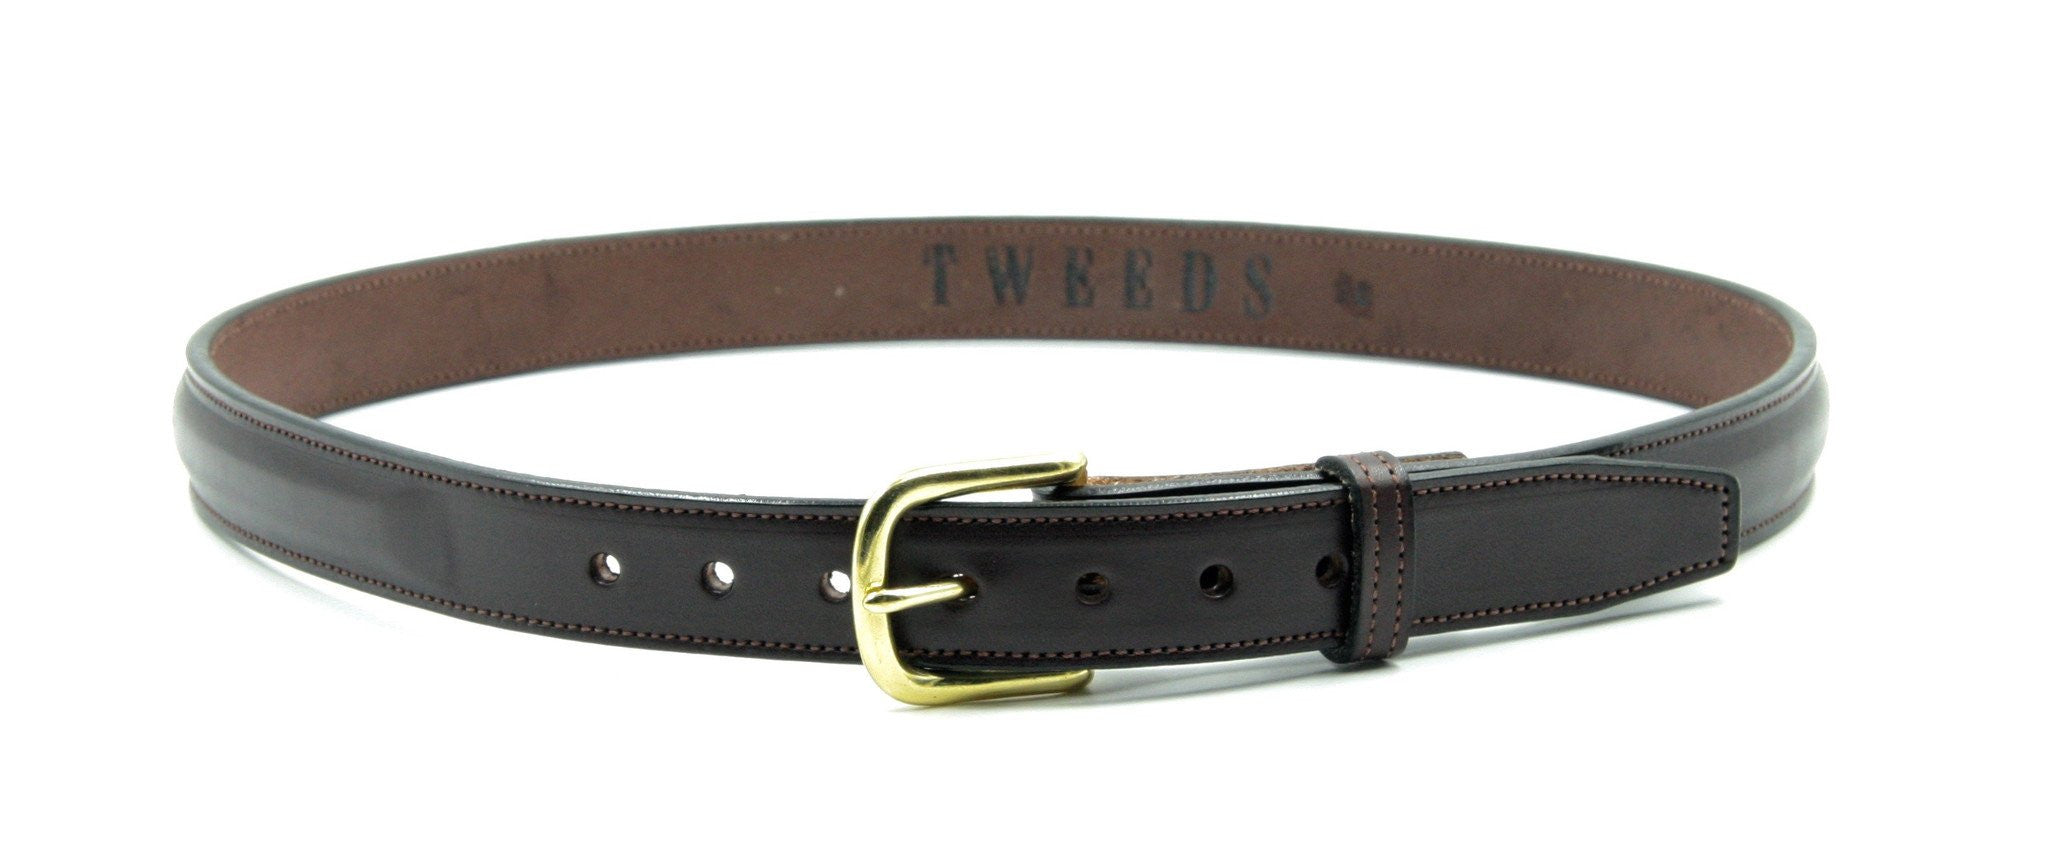 "TWEEDS 1"" Raised Belt, Brown"